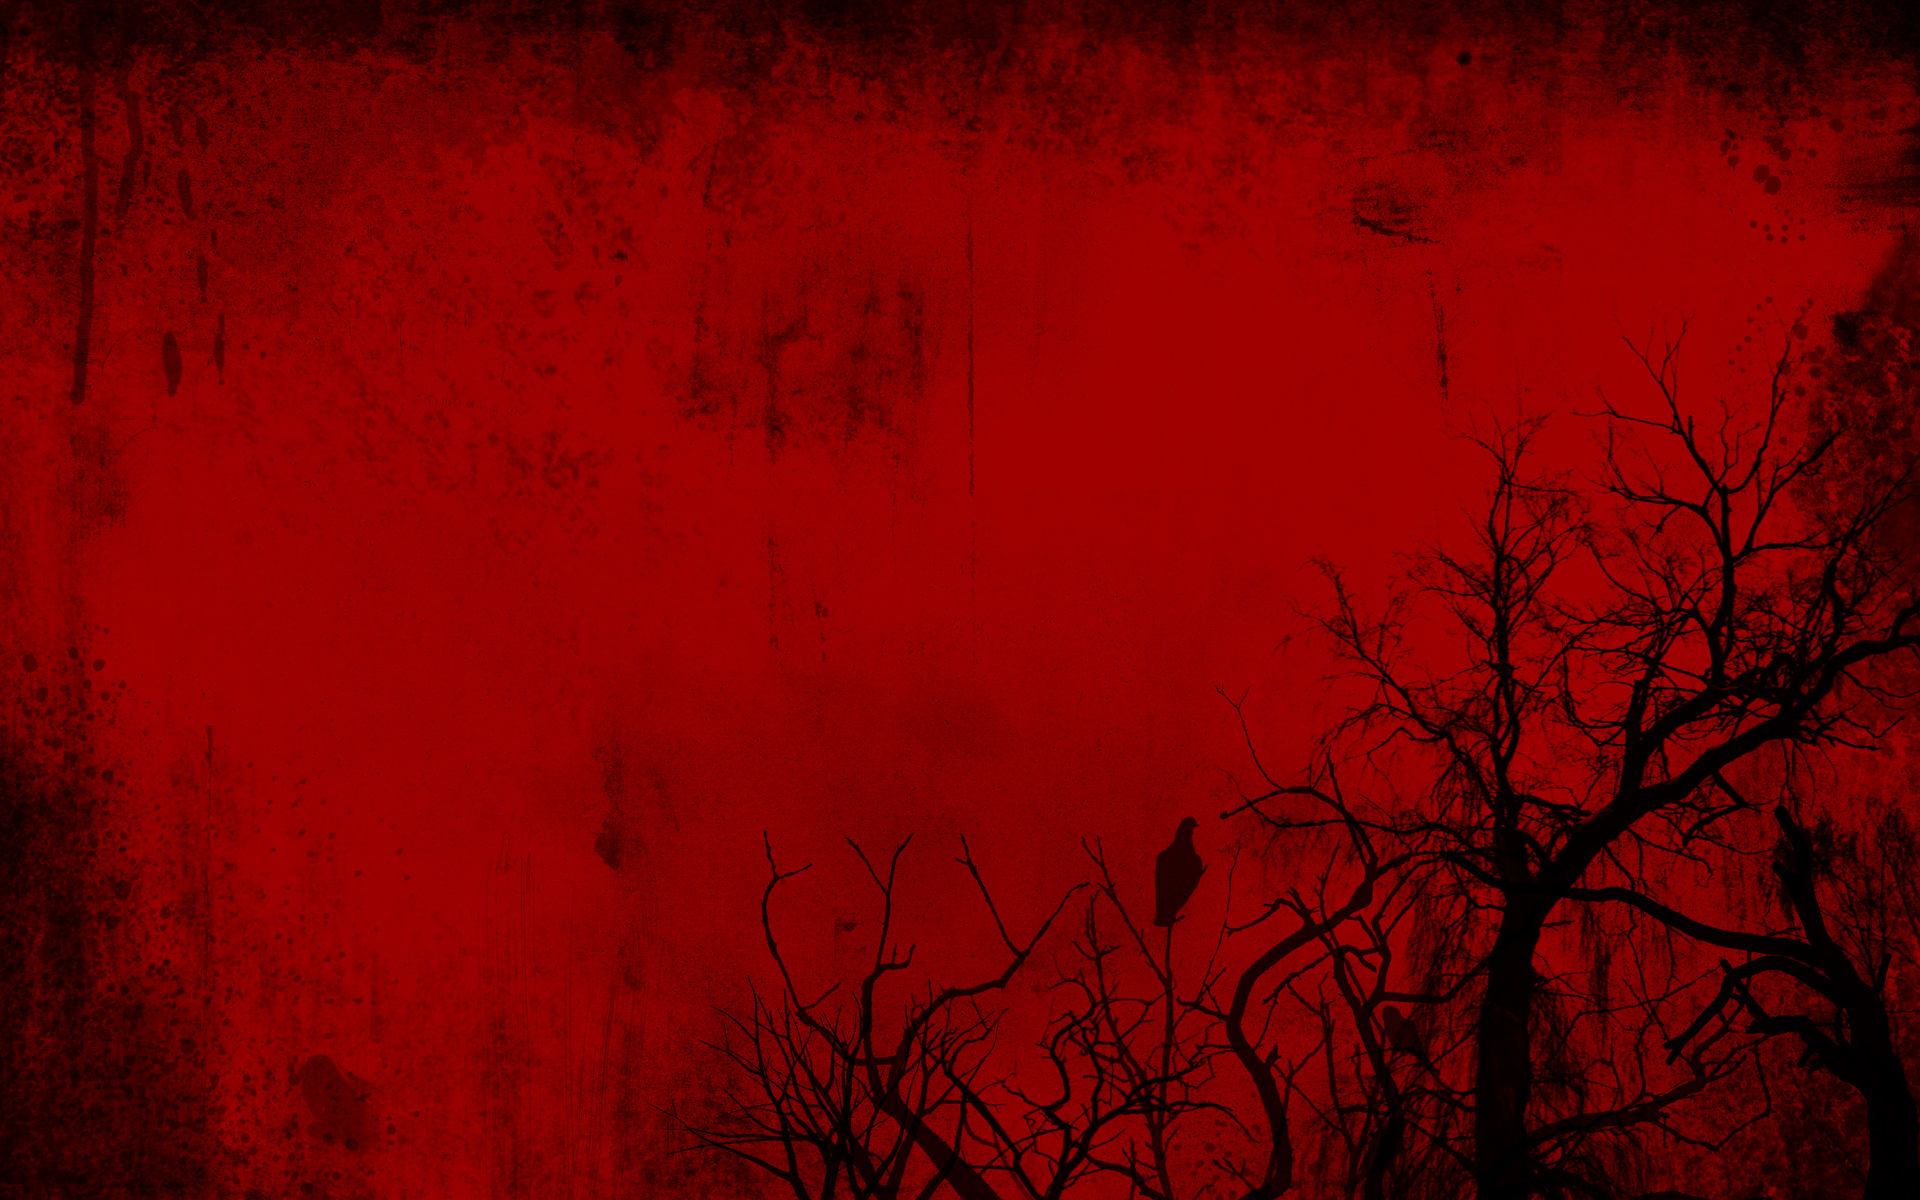 Simple Wallpaper Home Screen Red - tumblr_static_death-knight-terror-imagenes-full-hd-widescreen-blood-2200870  You Should Have_901842.jpg